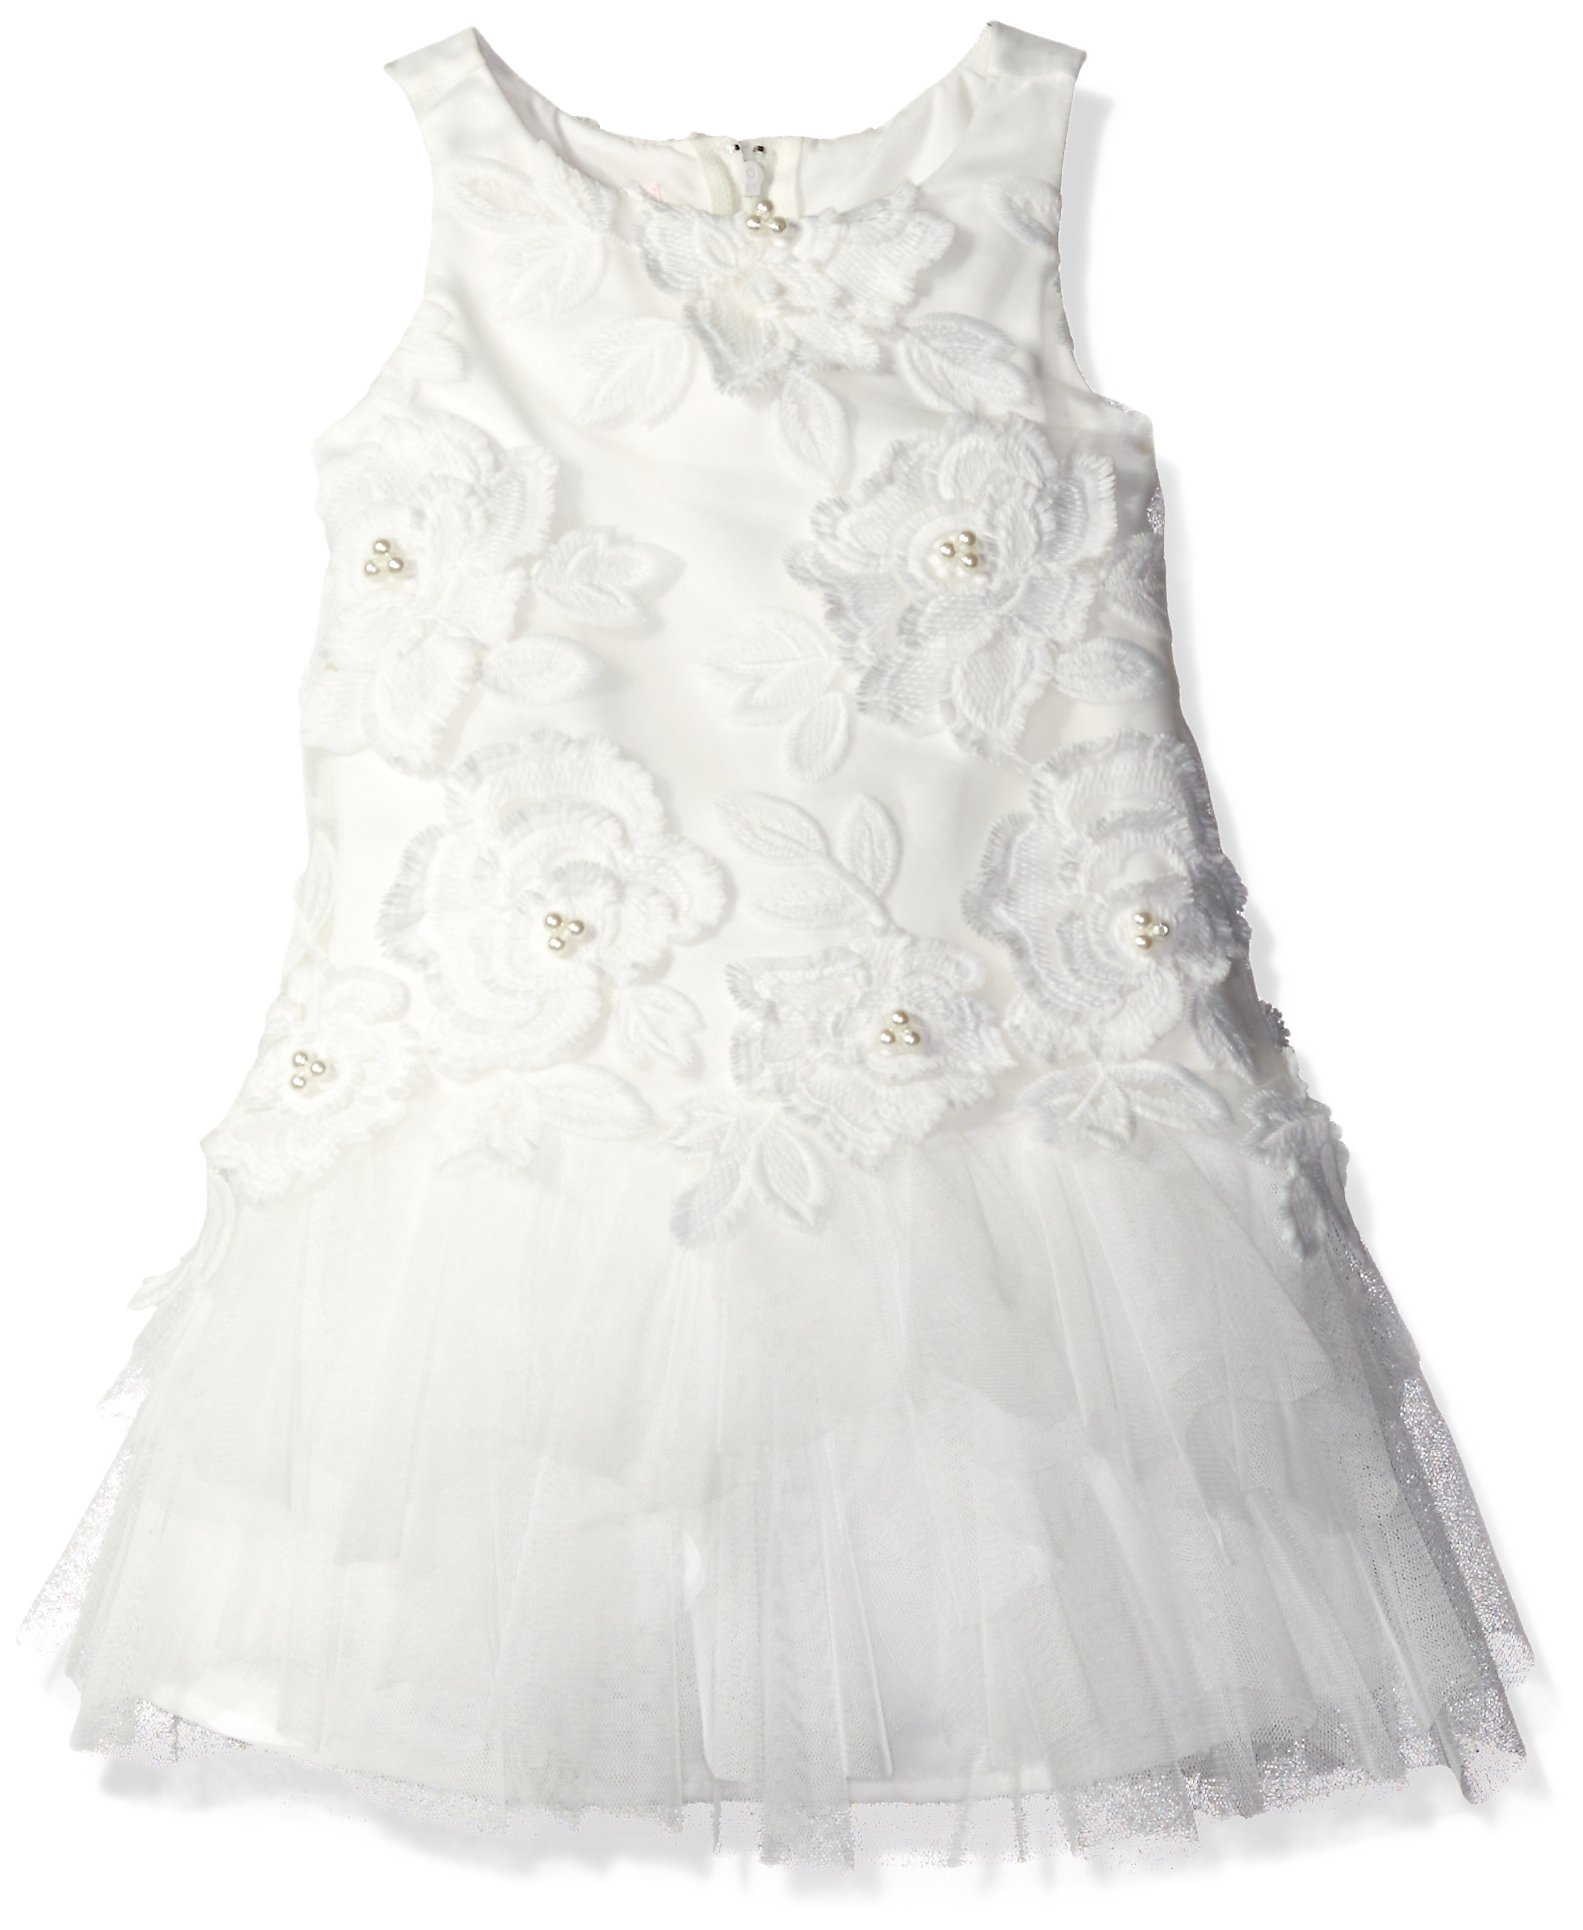 Biscotti Toddler Girls' Wedding Party Dress with Embroidered Bodice, Ivory, 2T